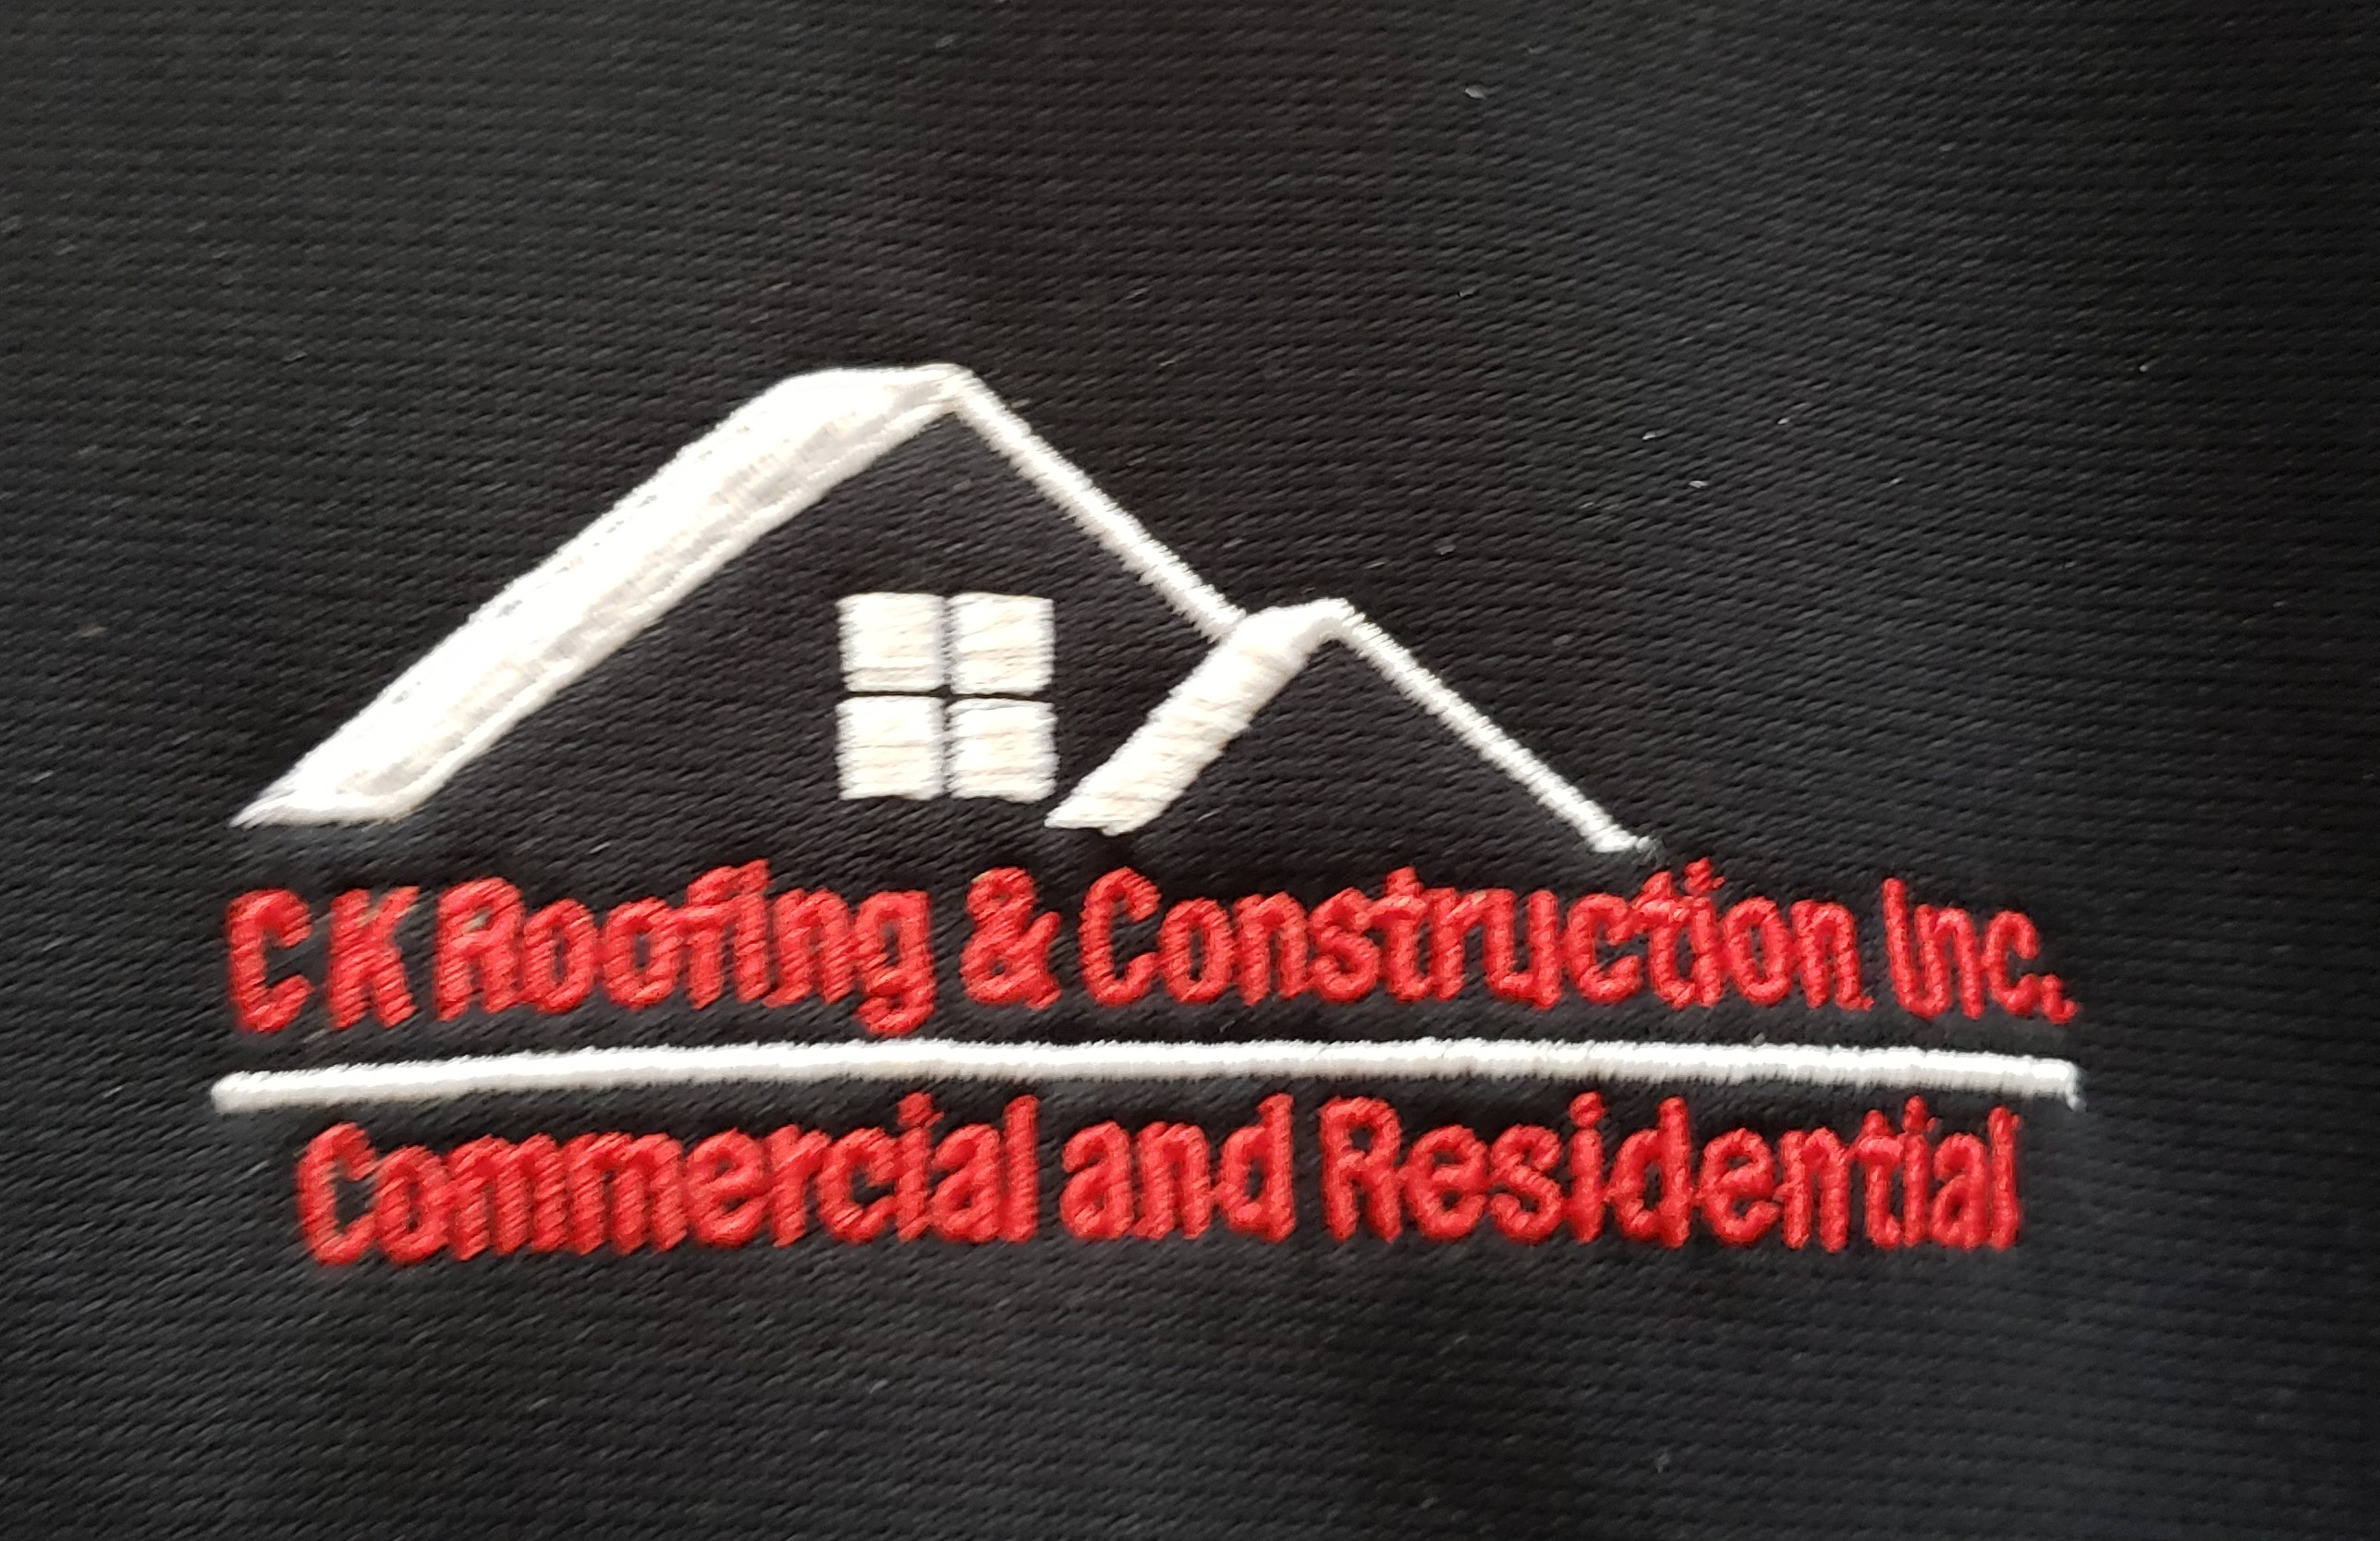 C K Roofing and Construction Inc. logo